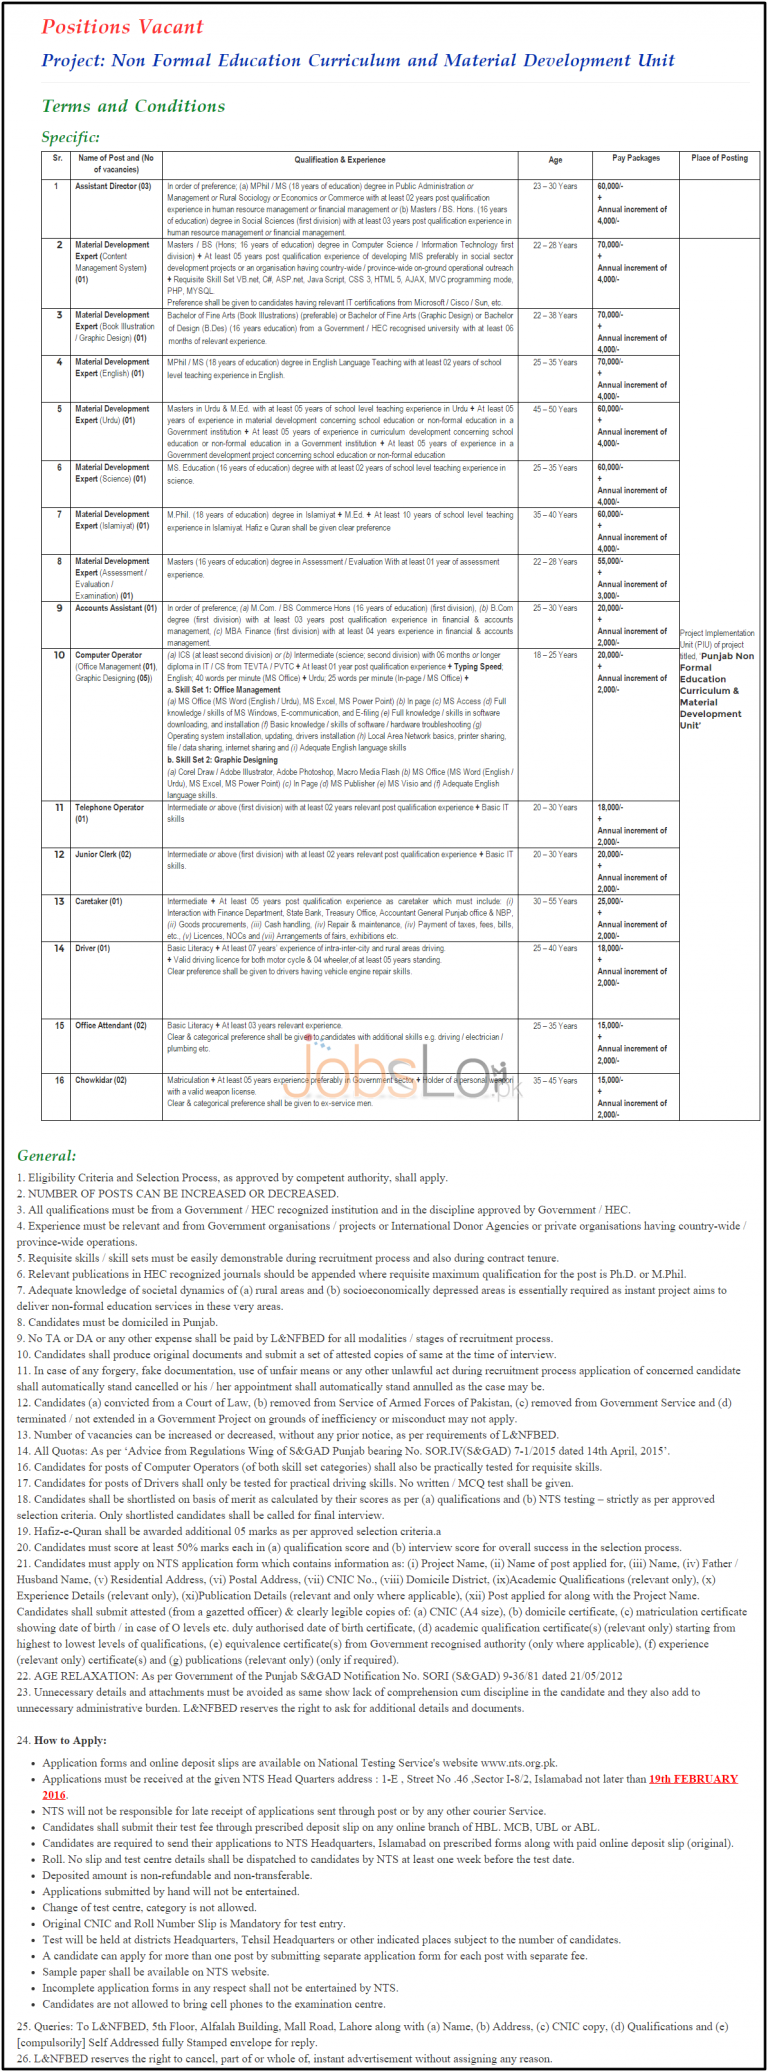 Literacy and Non Formal Basic Education Jobs 2016 in 36 Districts of Punjab